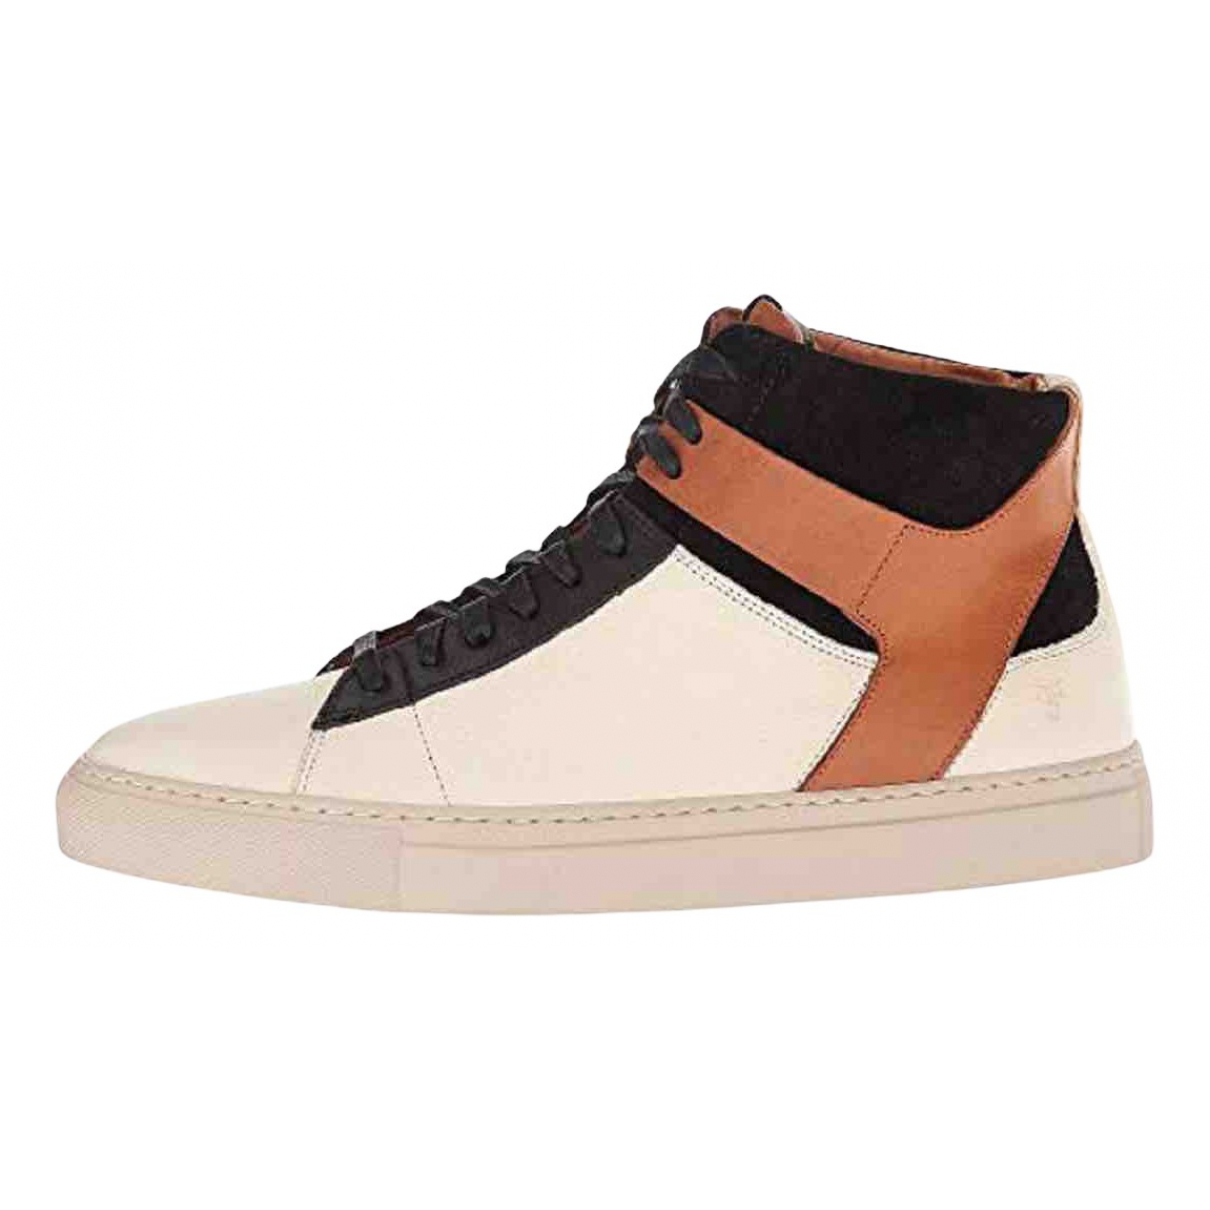 Frye N Multicolour Leather Trainers for Men 43.5 EU